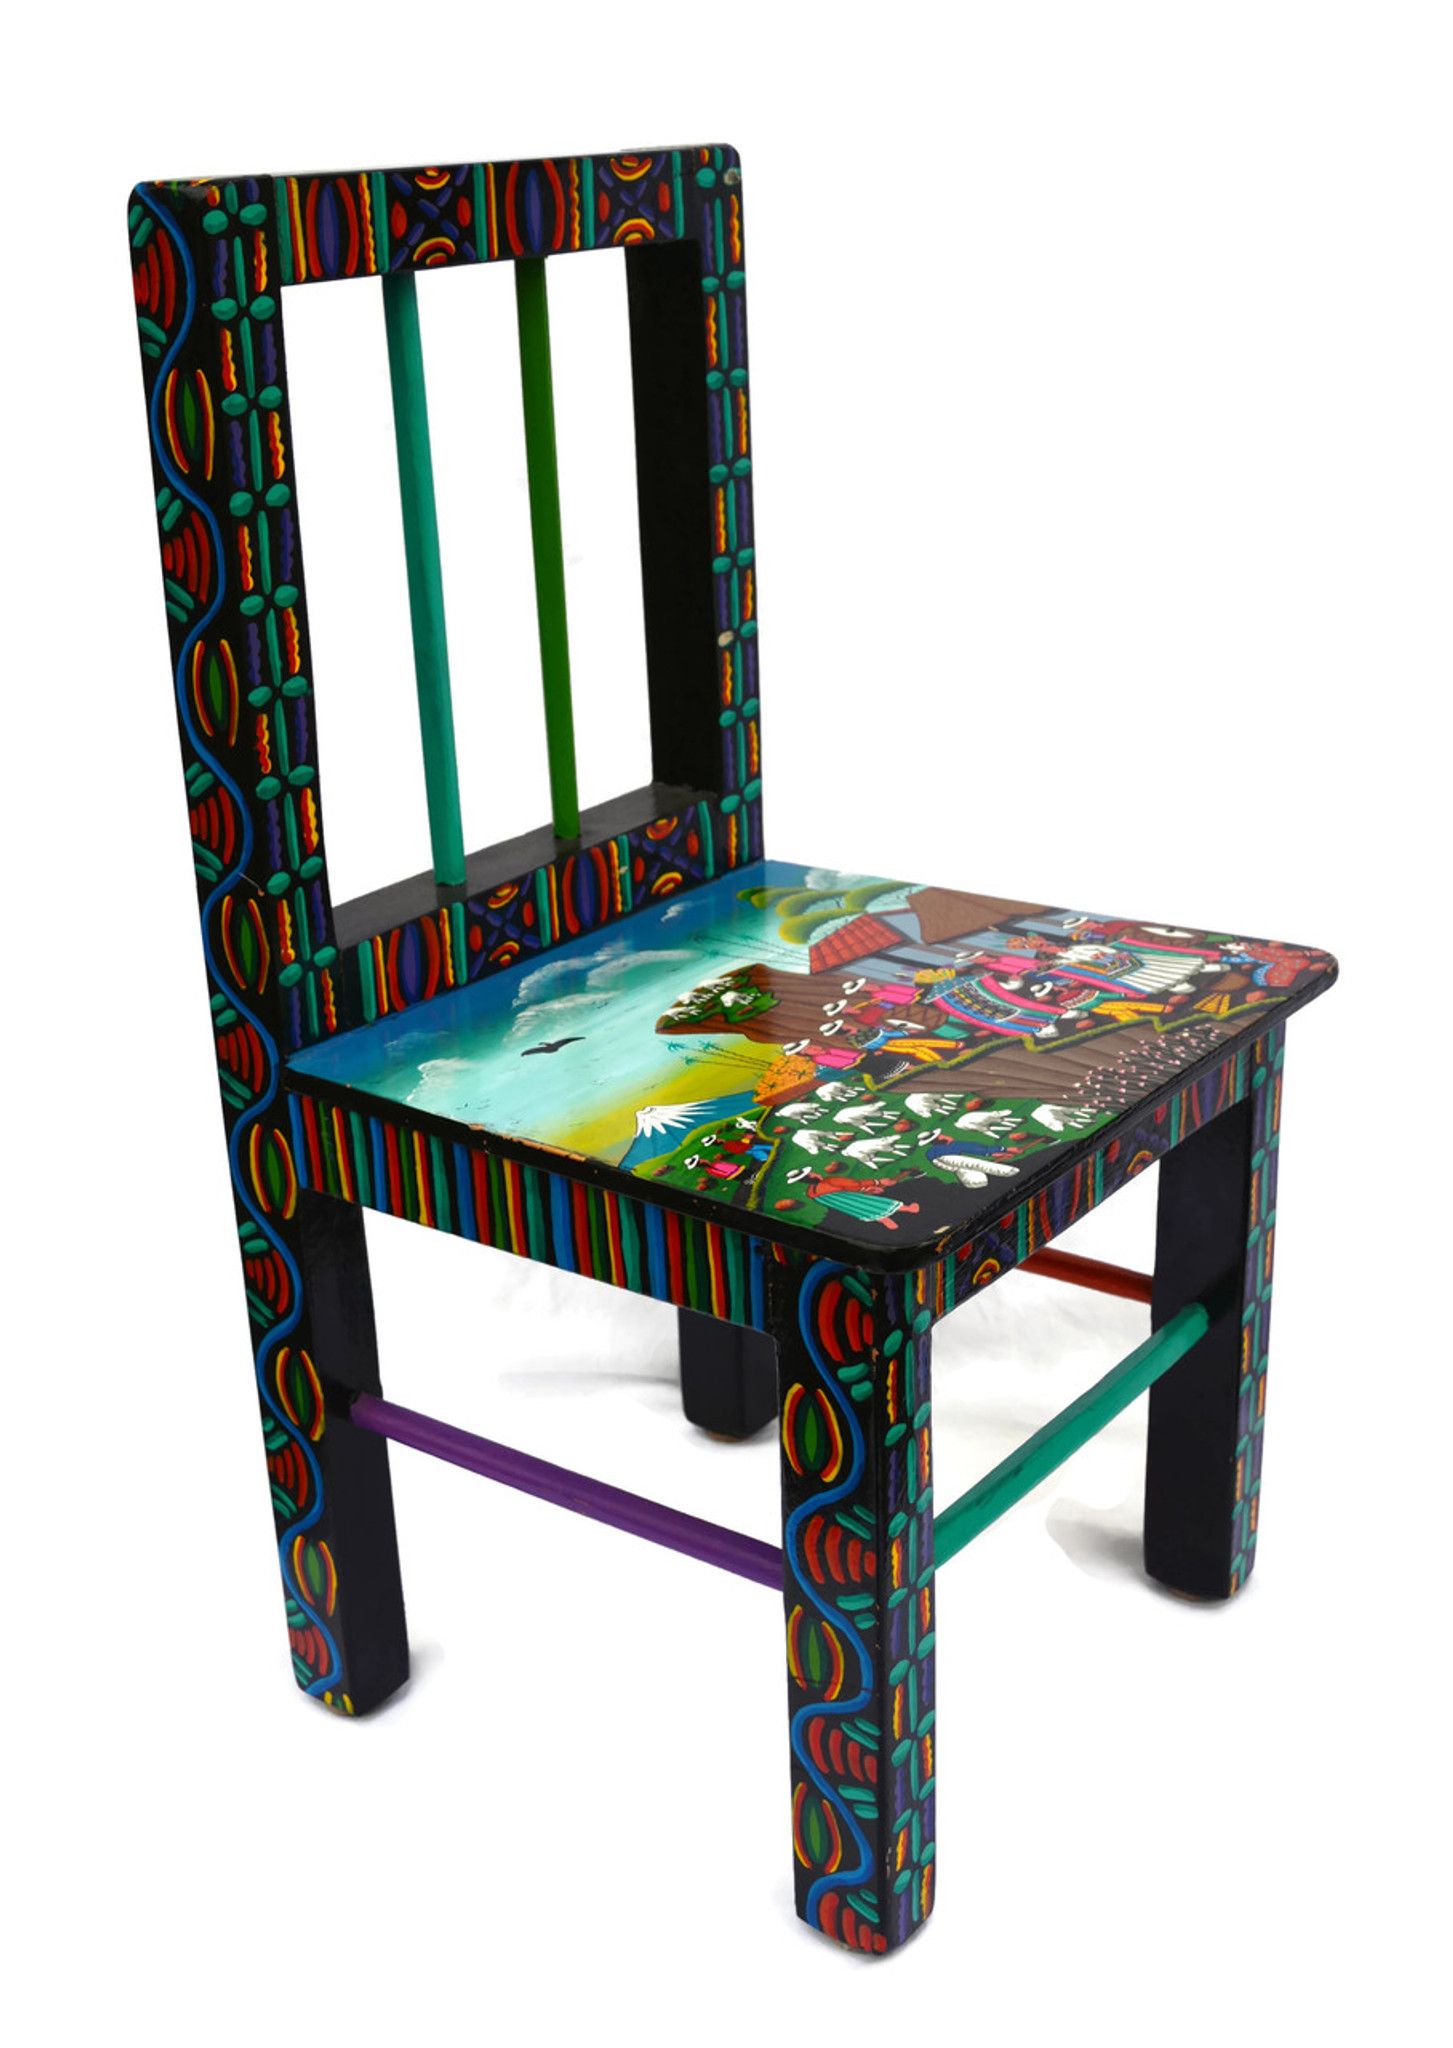 Phenomenal Tigua Hand Painted Childrens Chair 12 X 12 X 23 Pdpeps Interior Chair Design Pdpepsorg